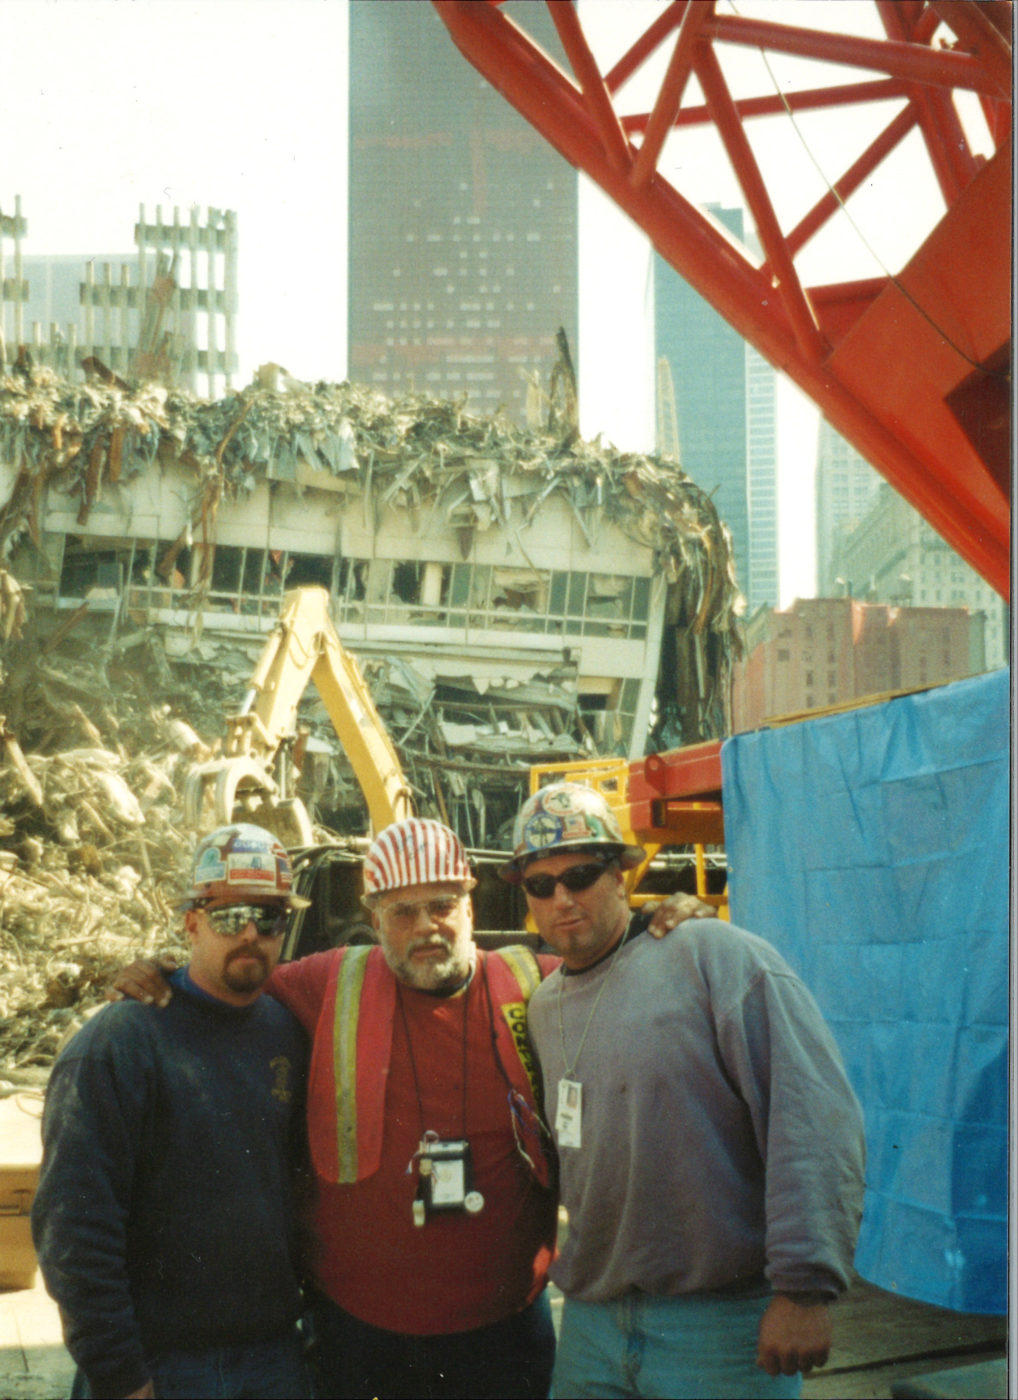 Workers in front of destroyed Marriot Hotel